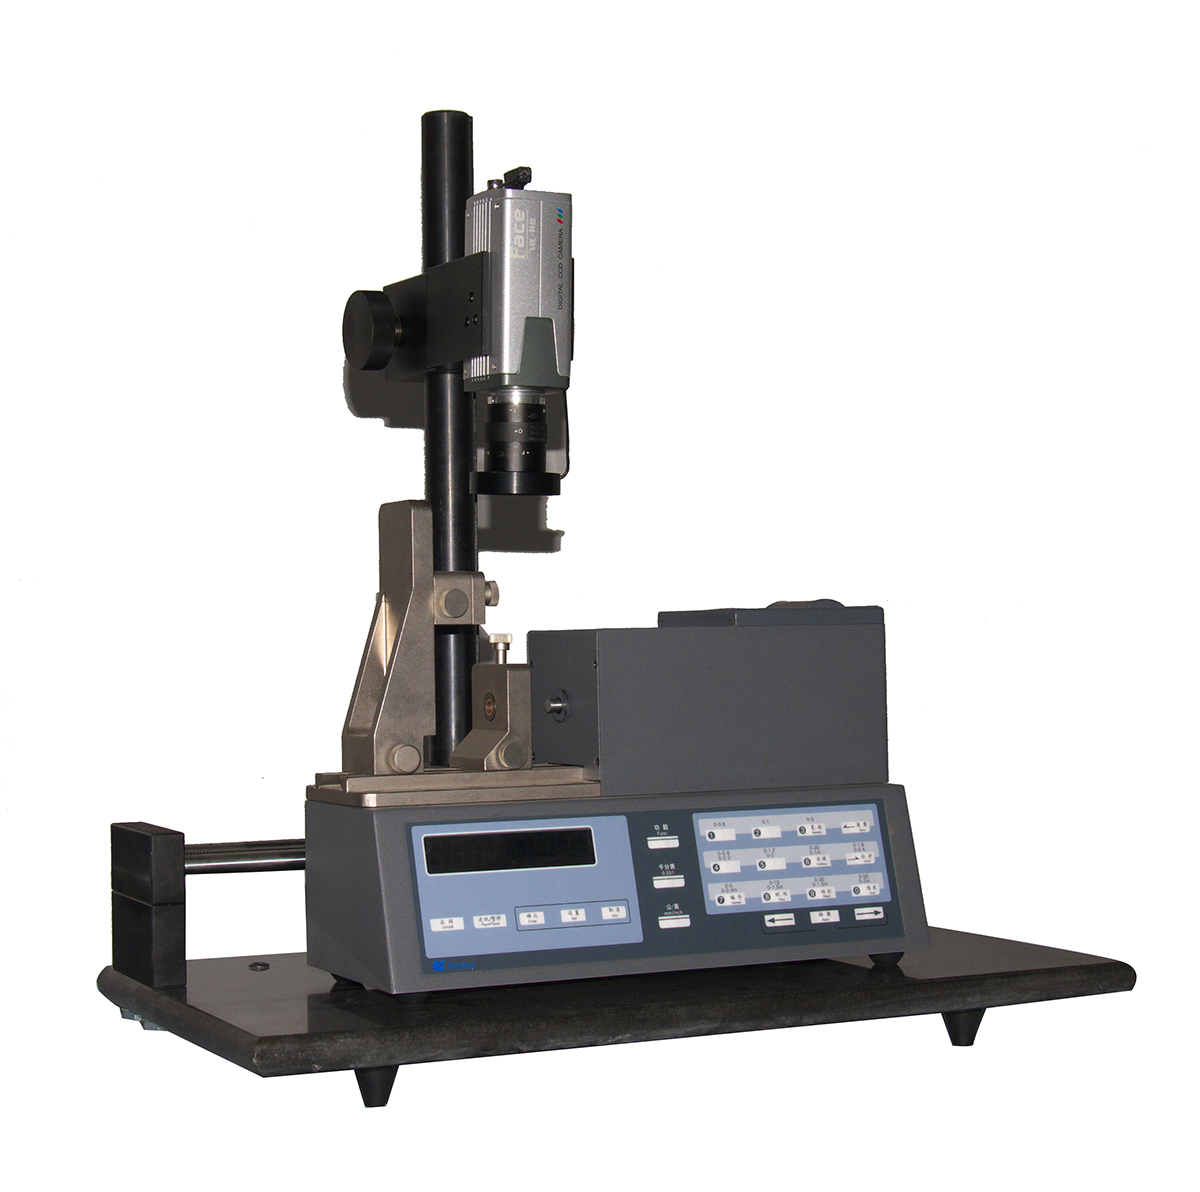 Automatic type verification instrument